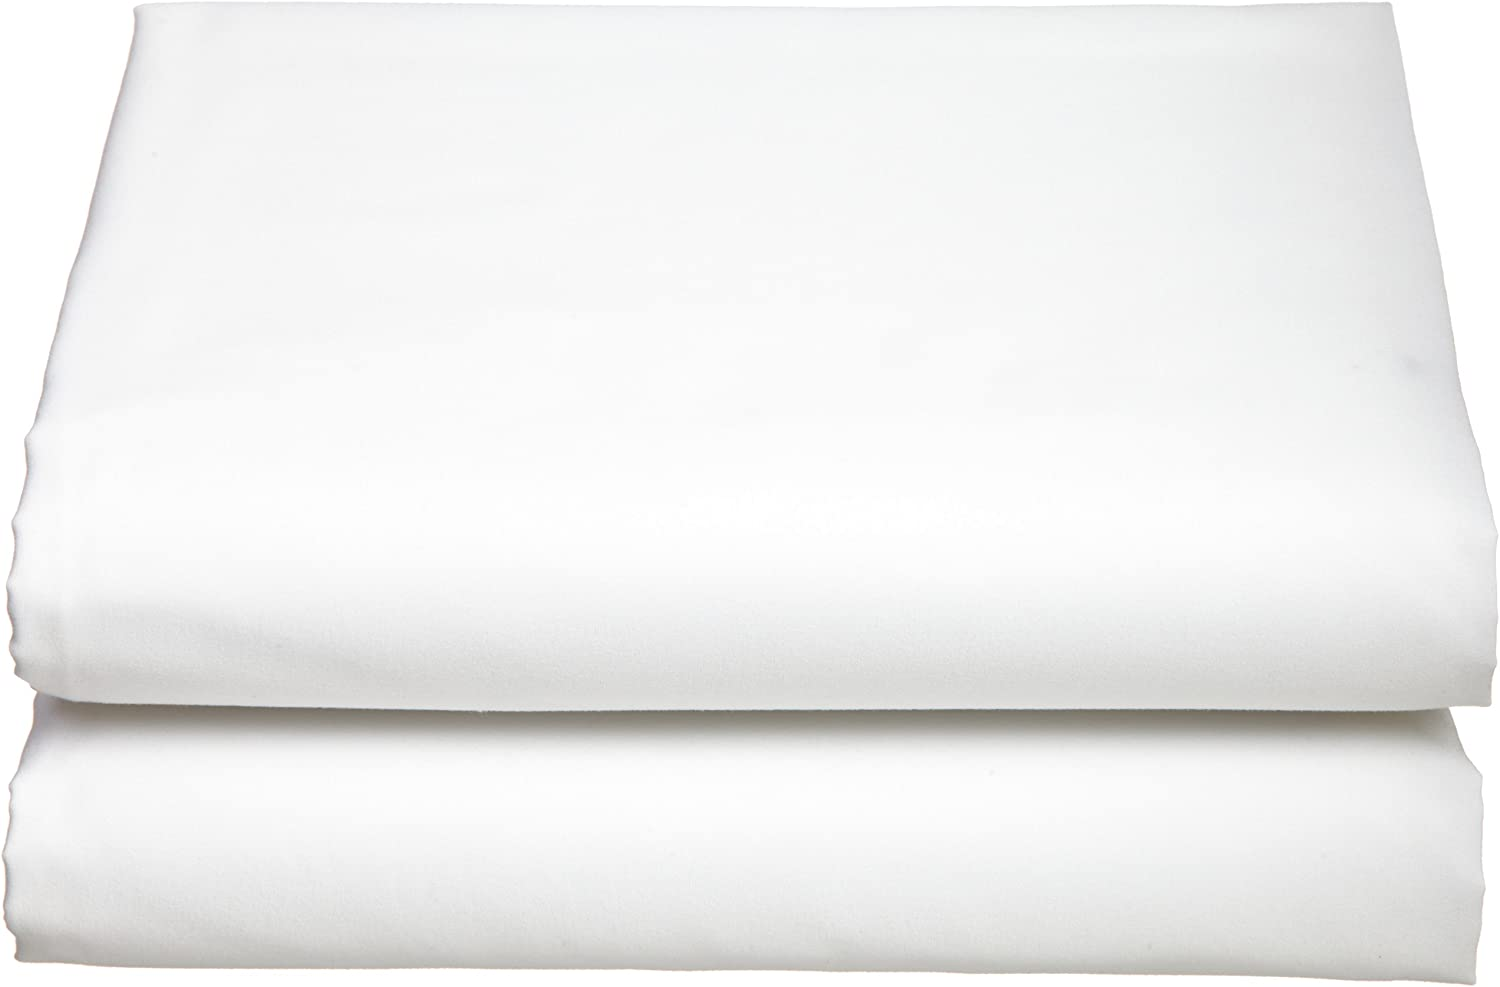 Luxury Queen fitted sheet brushed microfiber, White